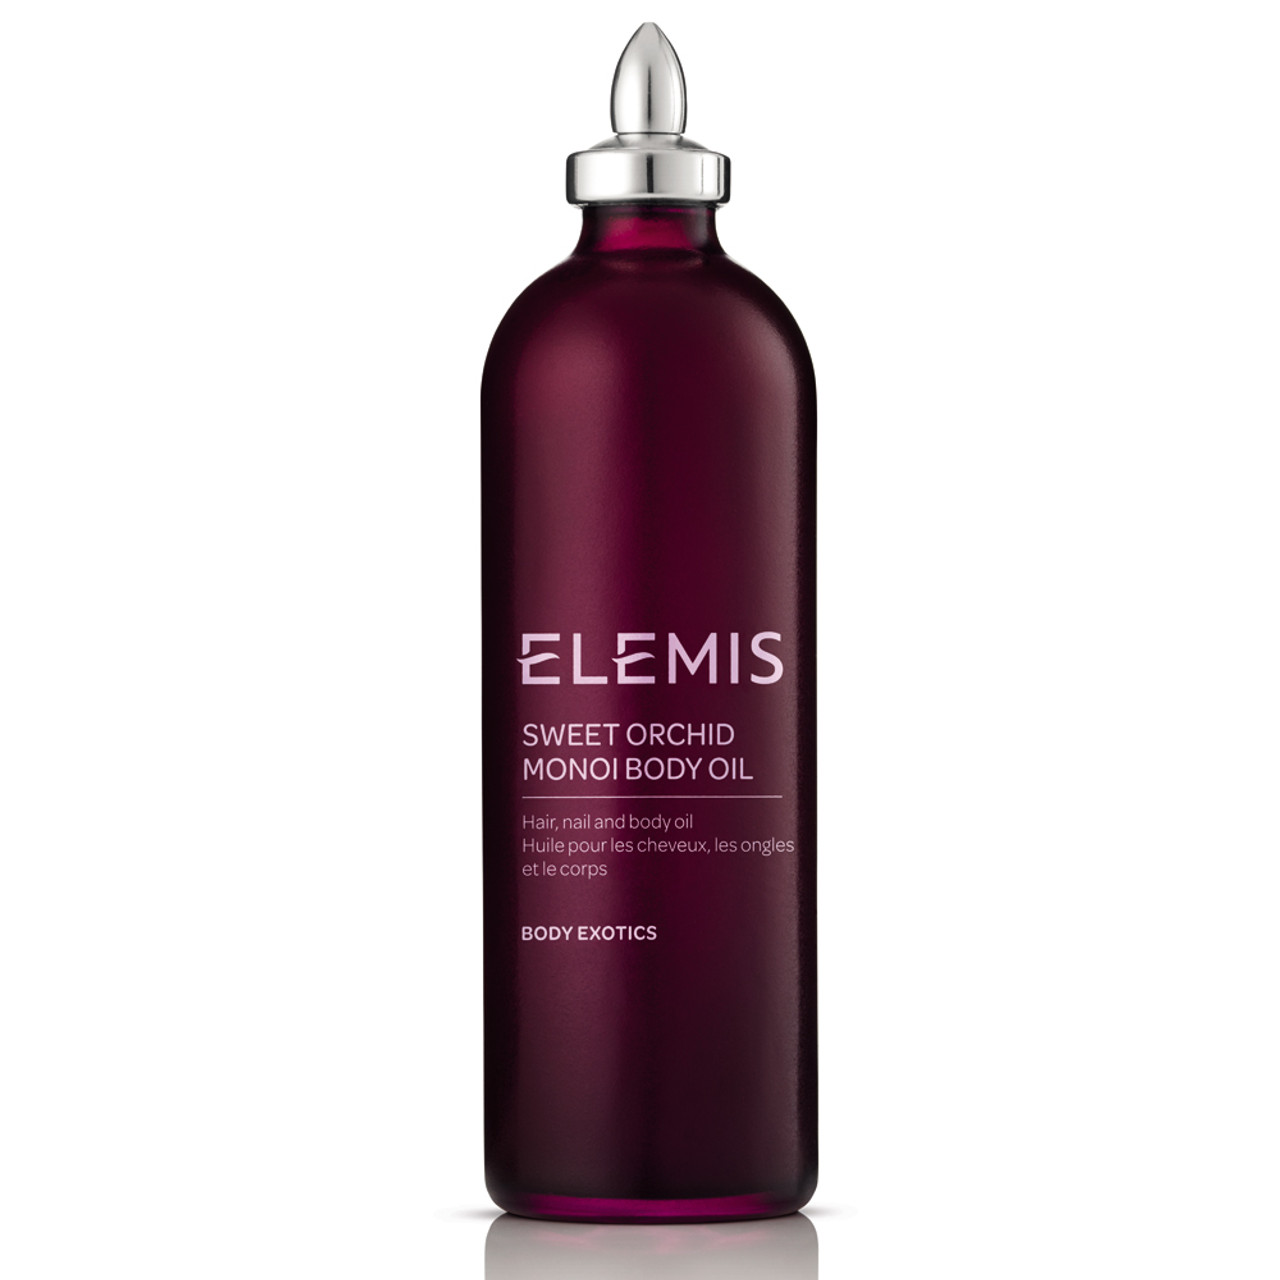 Elemis Sweet Orchid Monoi Body Oil (discontinued)